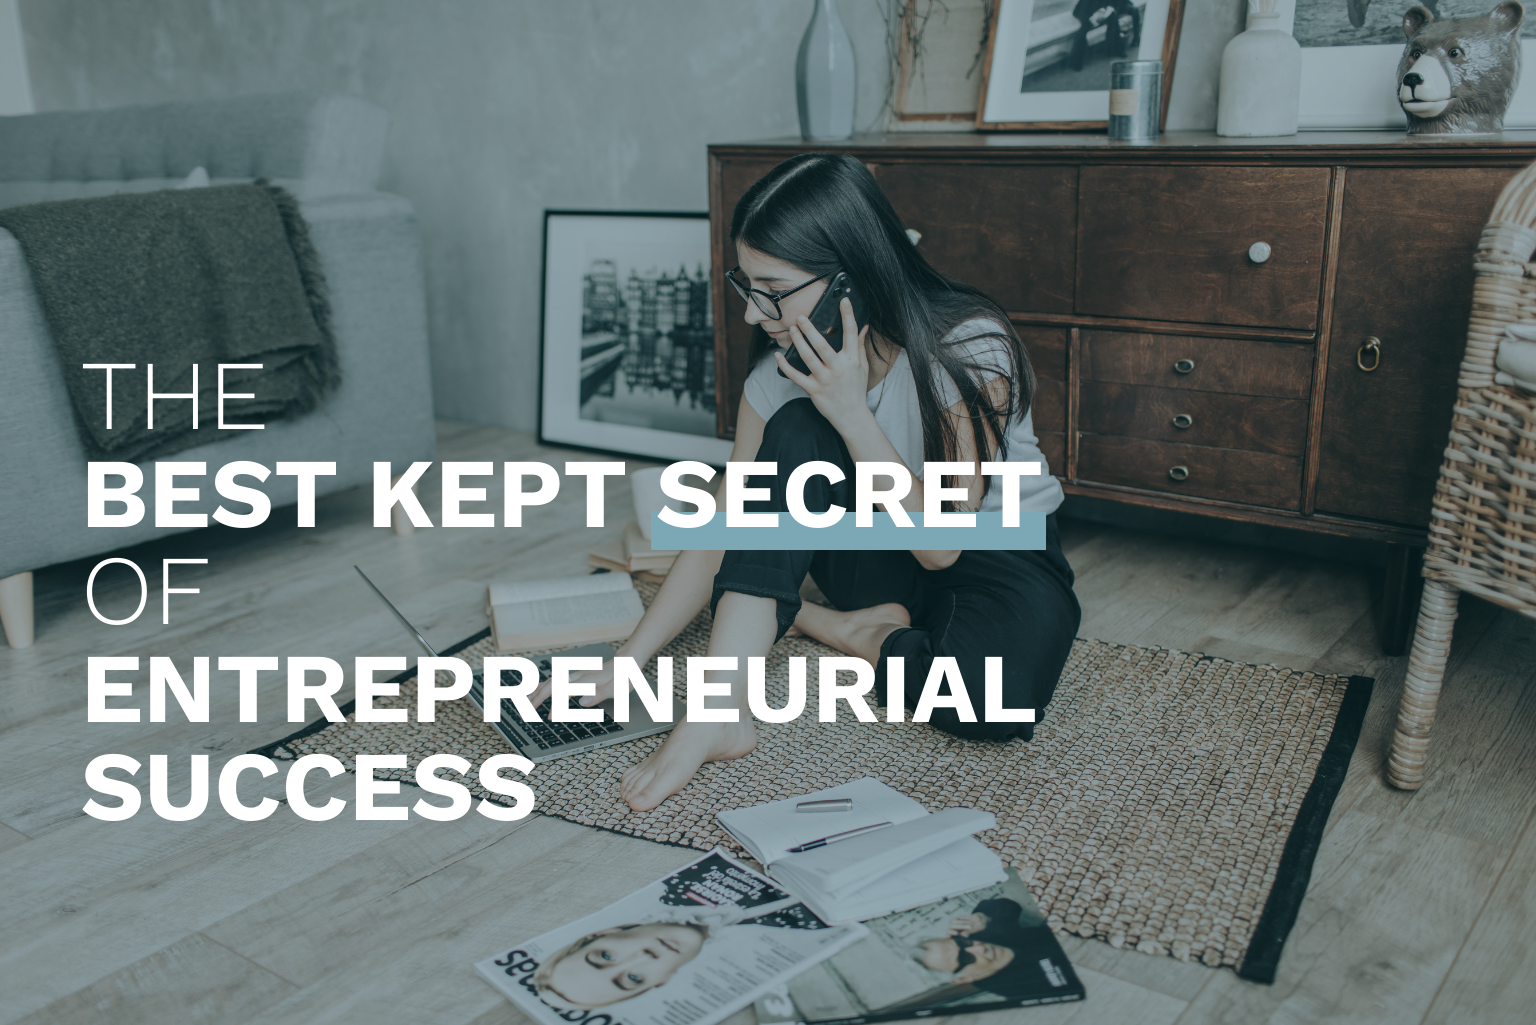 The Best Kept Secret of Entrepreneurial Success